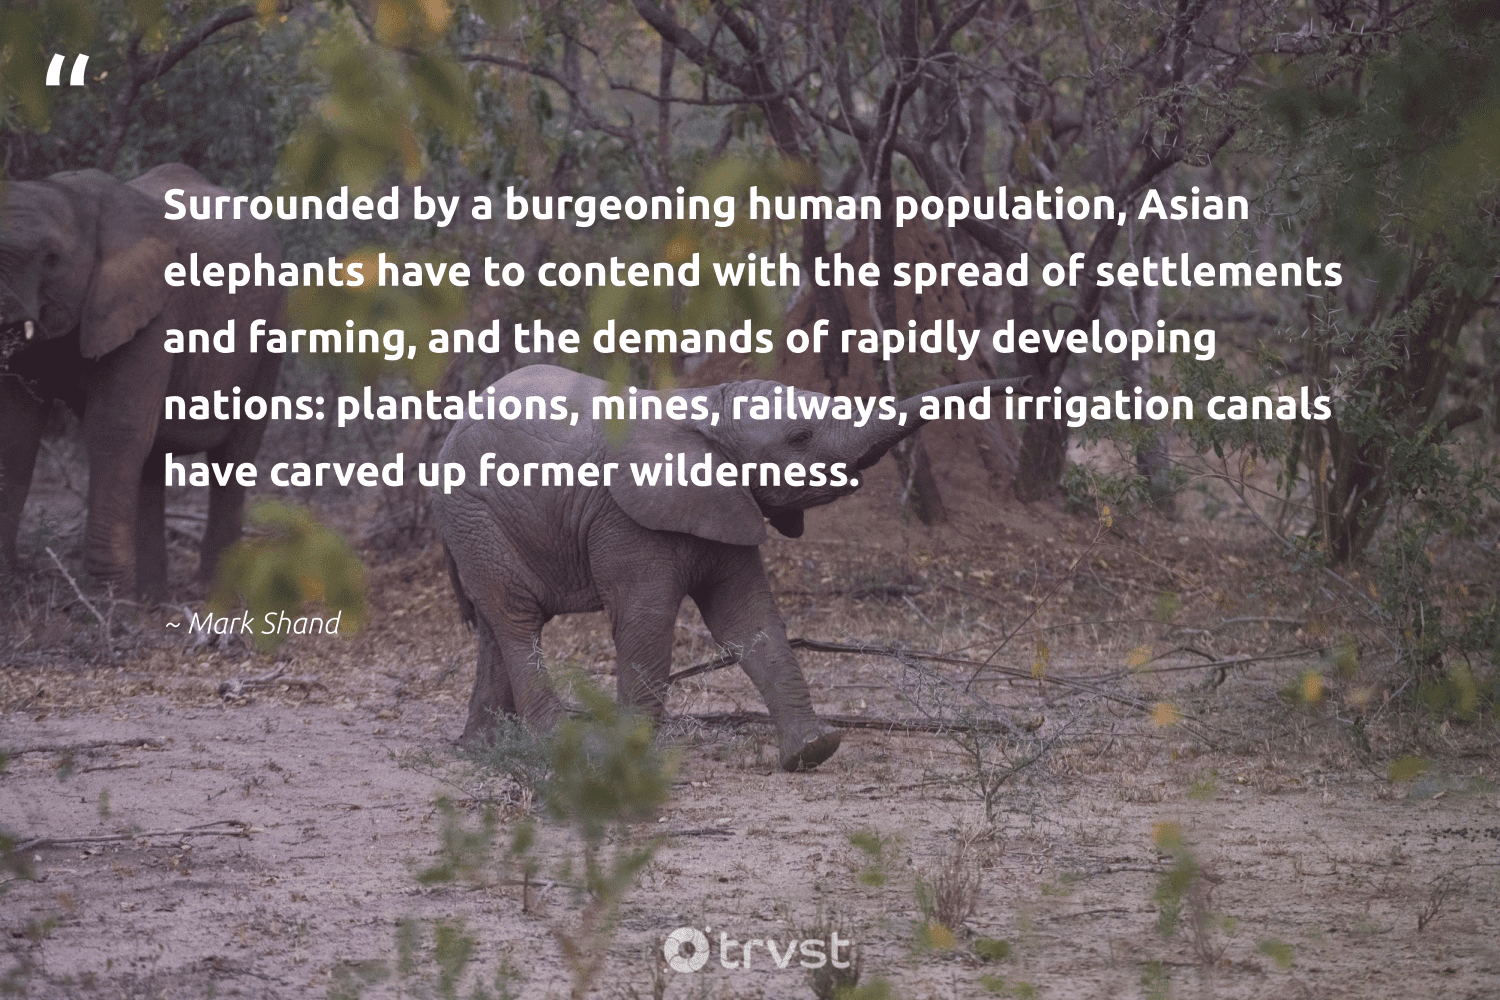 """""""Surrounded by a burgeoning human population, Asian elephants have to contend with the spread of settlements and farming, and the demands of rapidly developing nations: plantations, mines, railways, and irrigation canals have carved up former wilderness.""""  - Mark Shand #trvst #quotes #wilderness #elephants #elephantlove #socialchange #endangered #bethechange #endangeredspecies #collectiveaction #naturelovers #impact"""